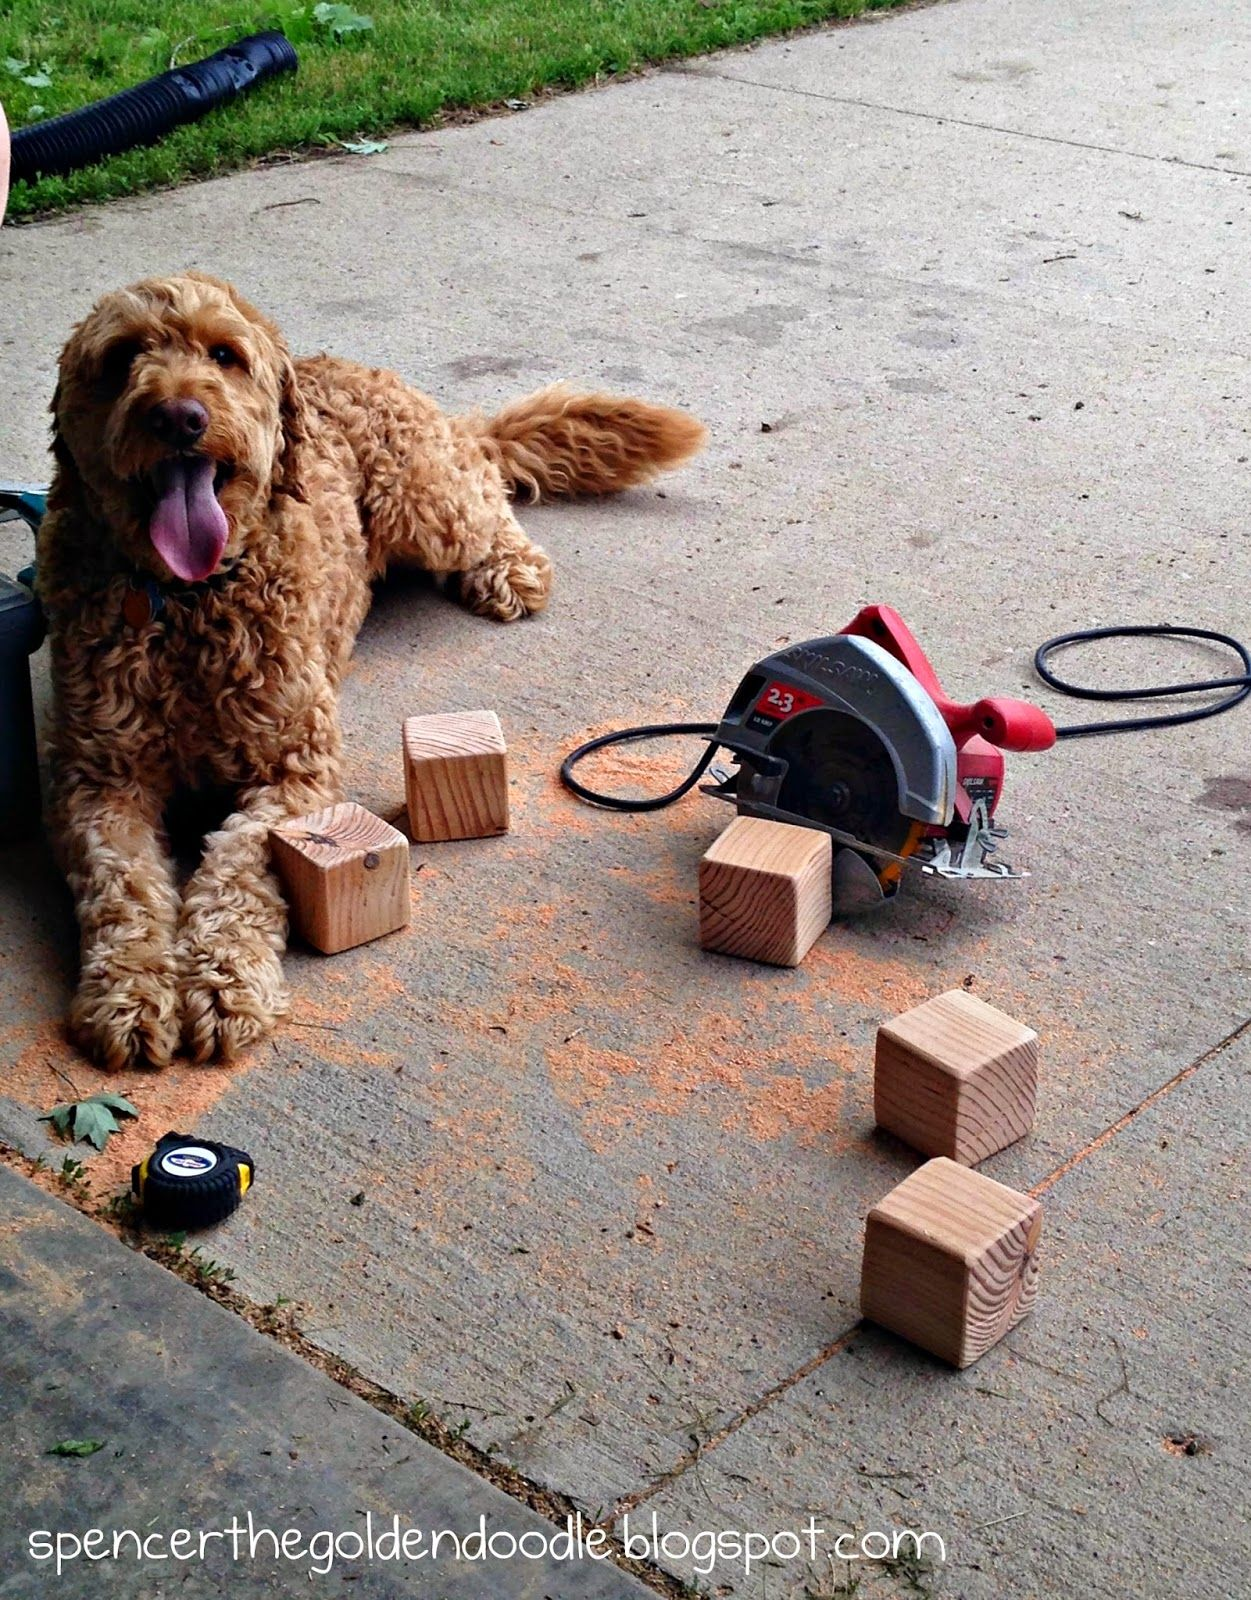 Spencer the Goldendoodle making a giant outside Yahtzee game.